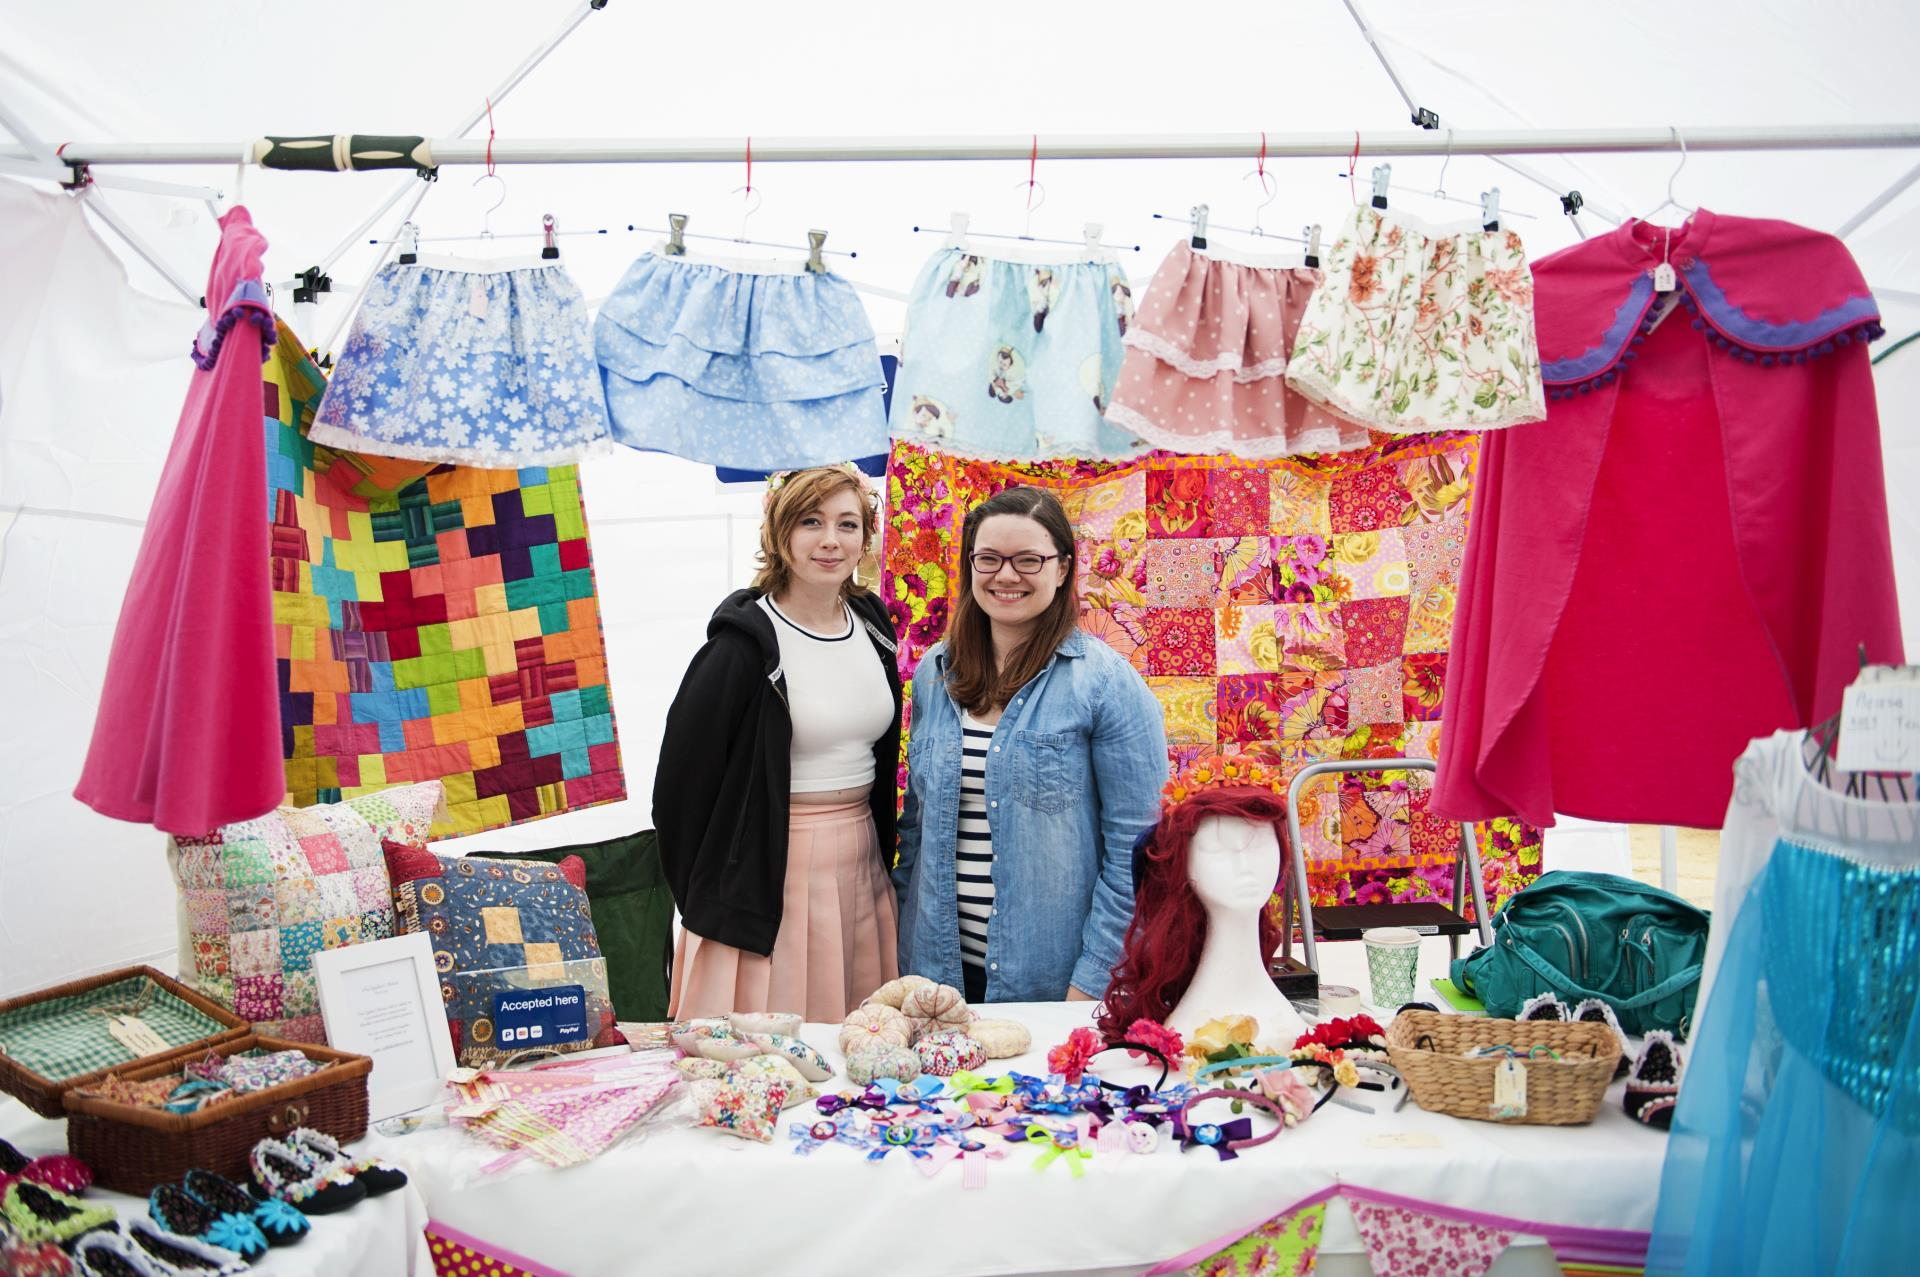 Homemade clothing stall